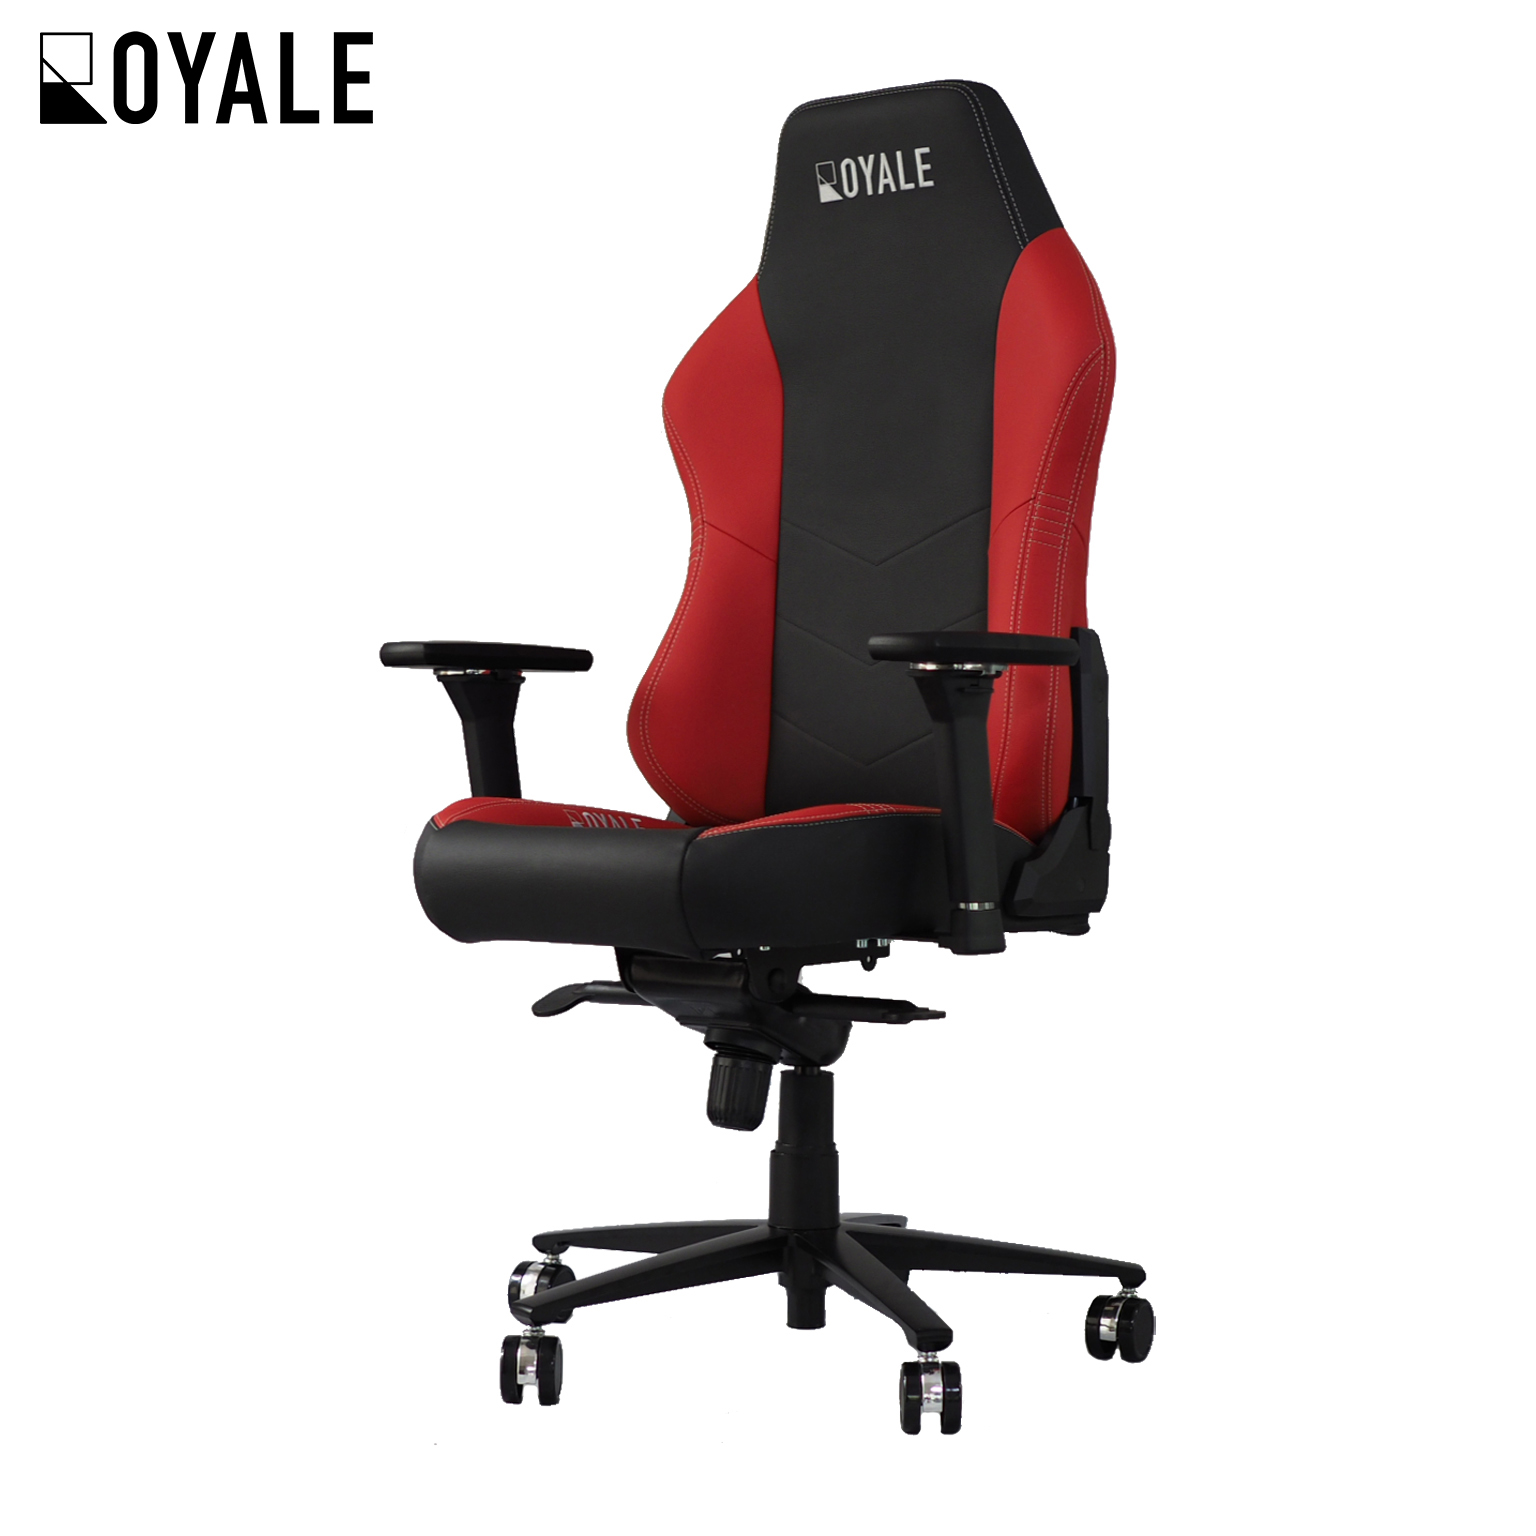 Genuine Cowhide Leather Royale Gaming Chair in Black/Red/Silver (Automotive-grade upholstery)